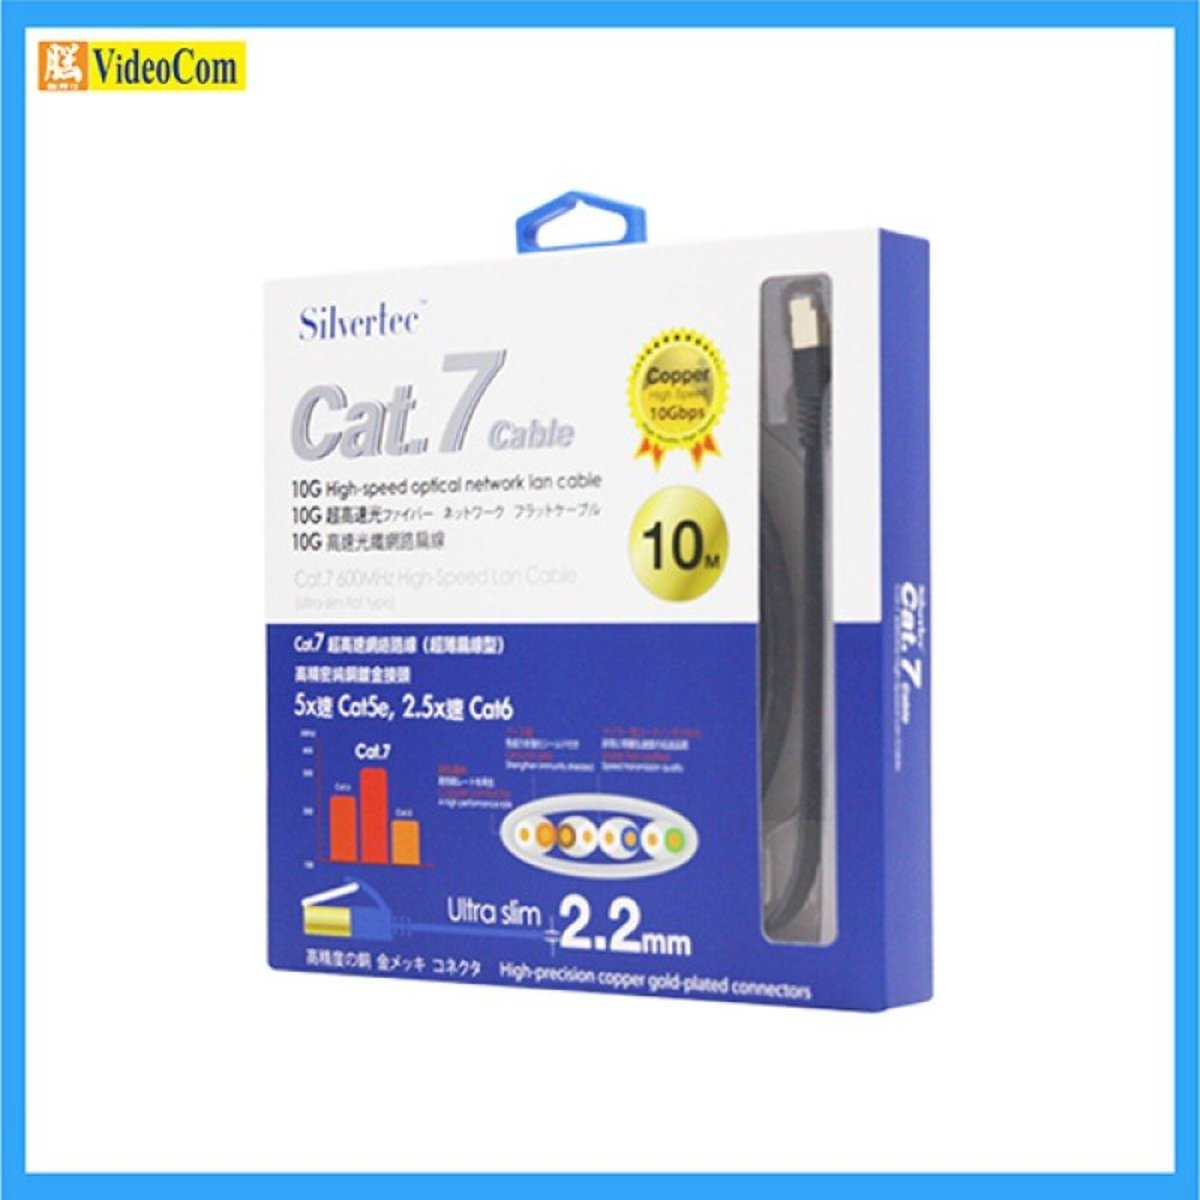 SilverTec Cat.7 flat patch cord cable 10M